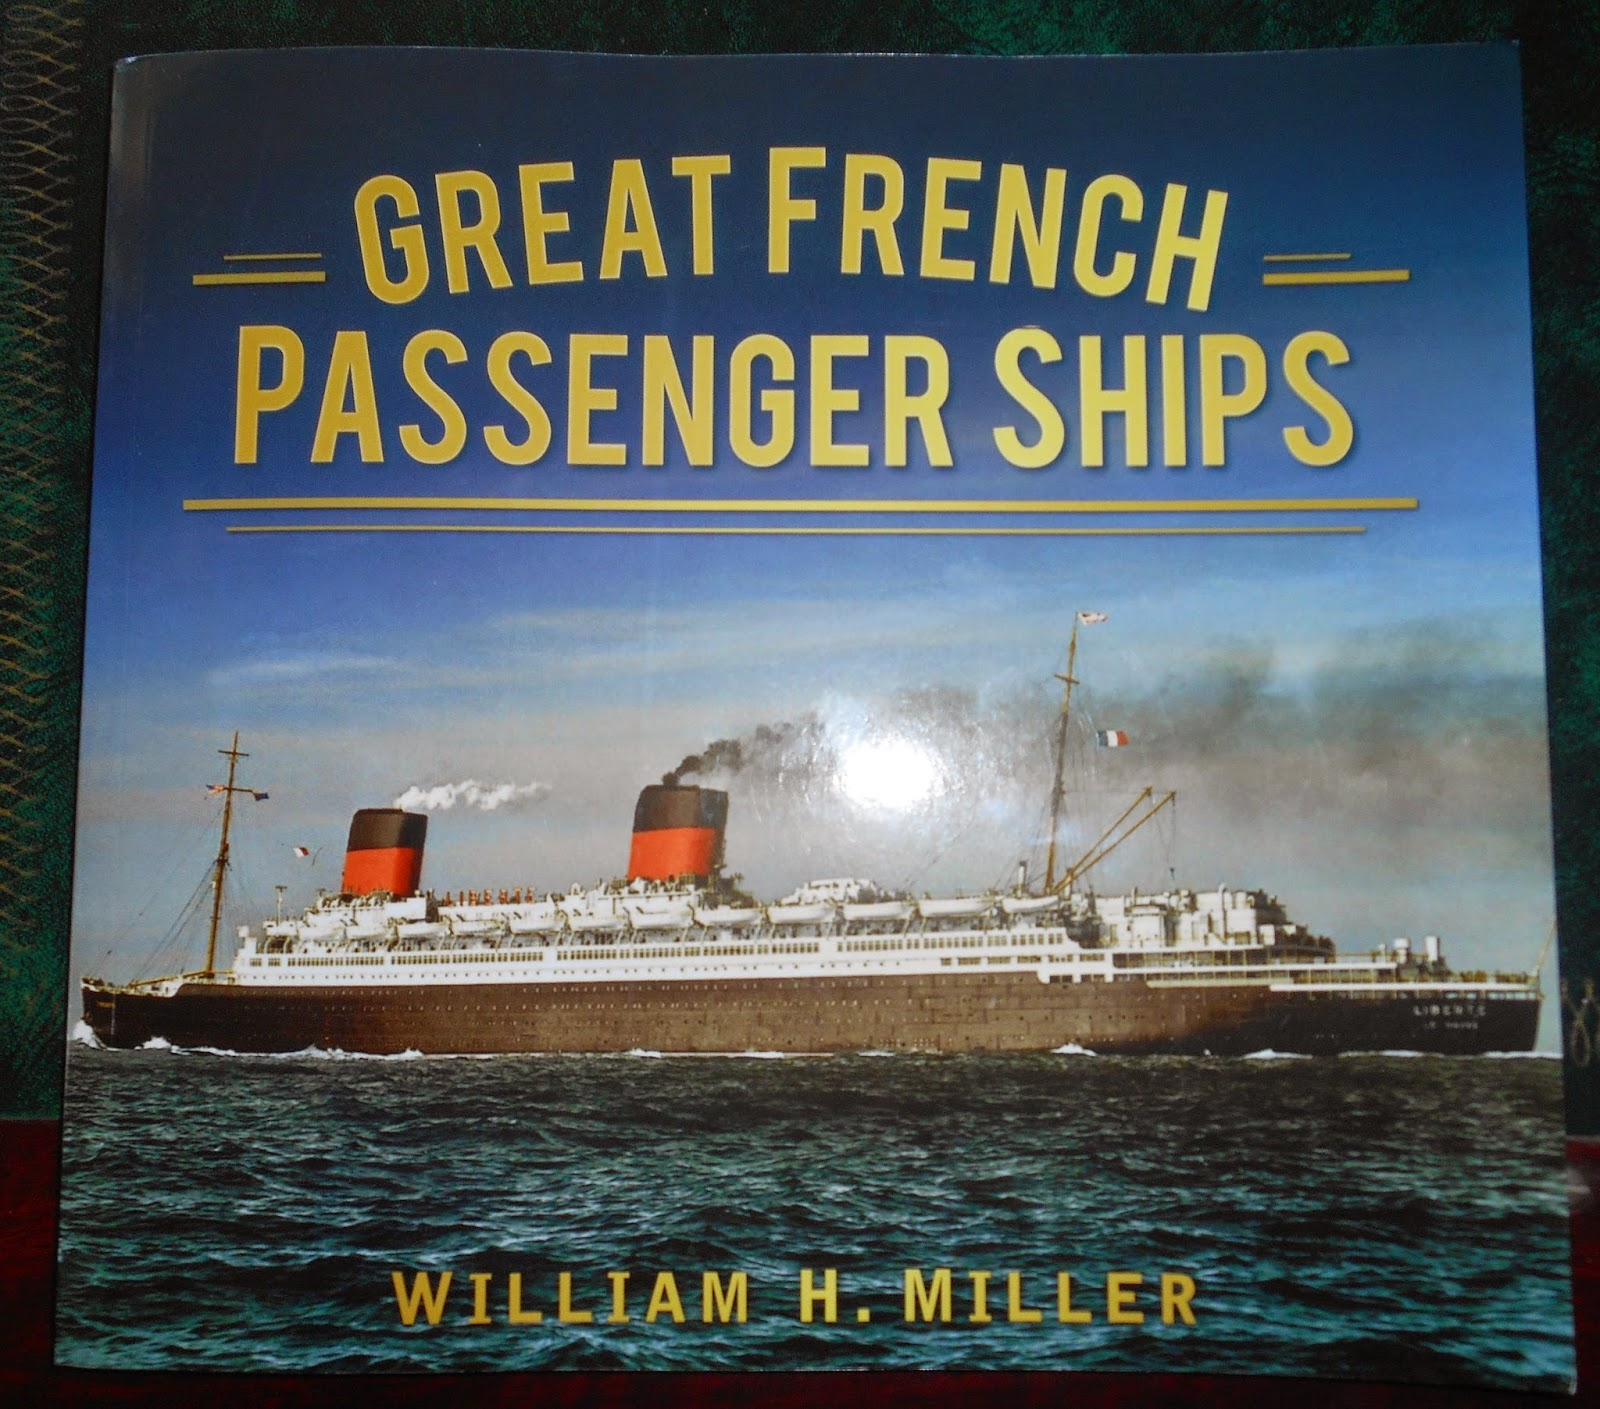 Great French Passenger Ships by William H. Miller.